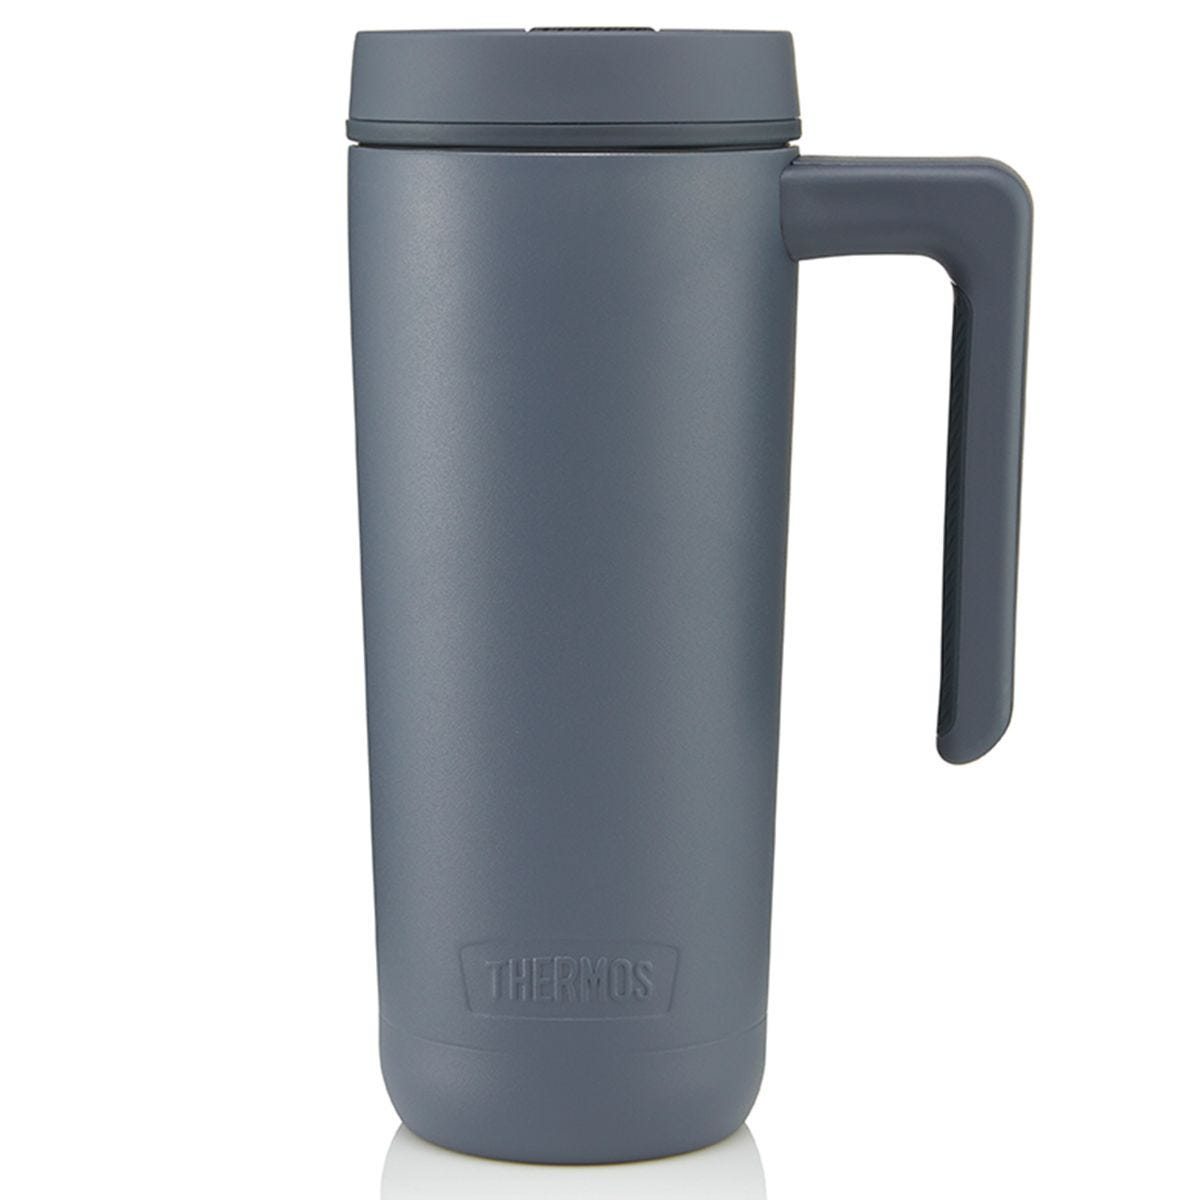 Thermos Guardian Stainless Steel Travel Mug 530ml - Blue